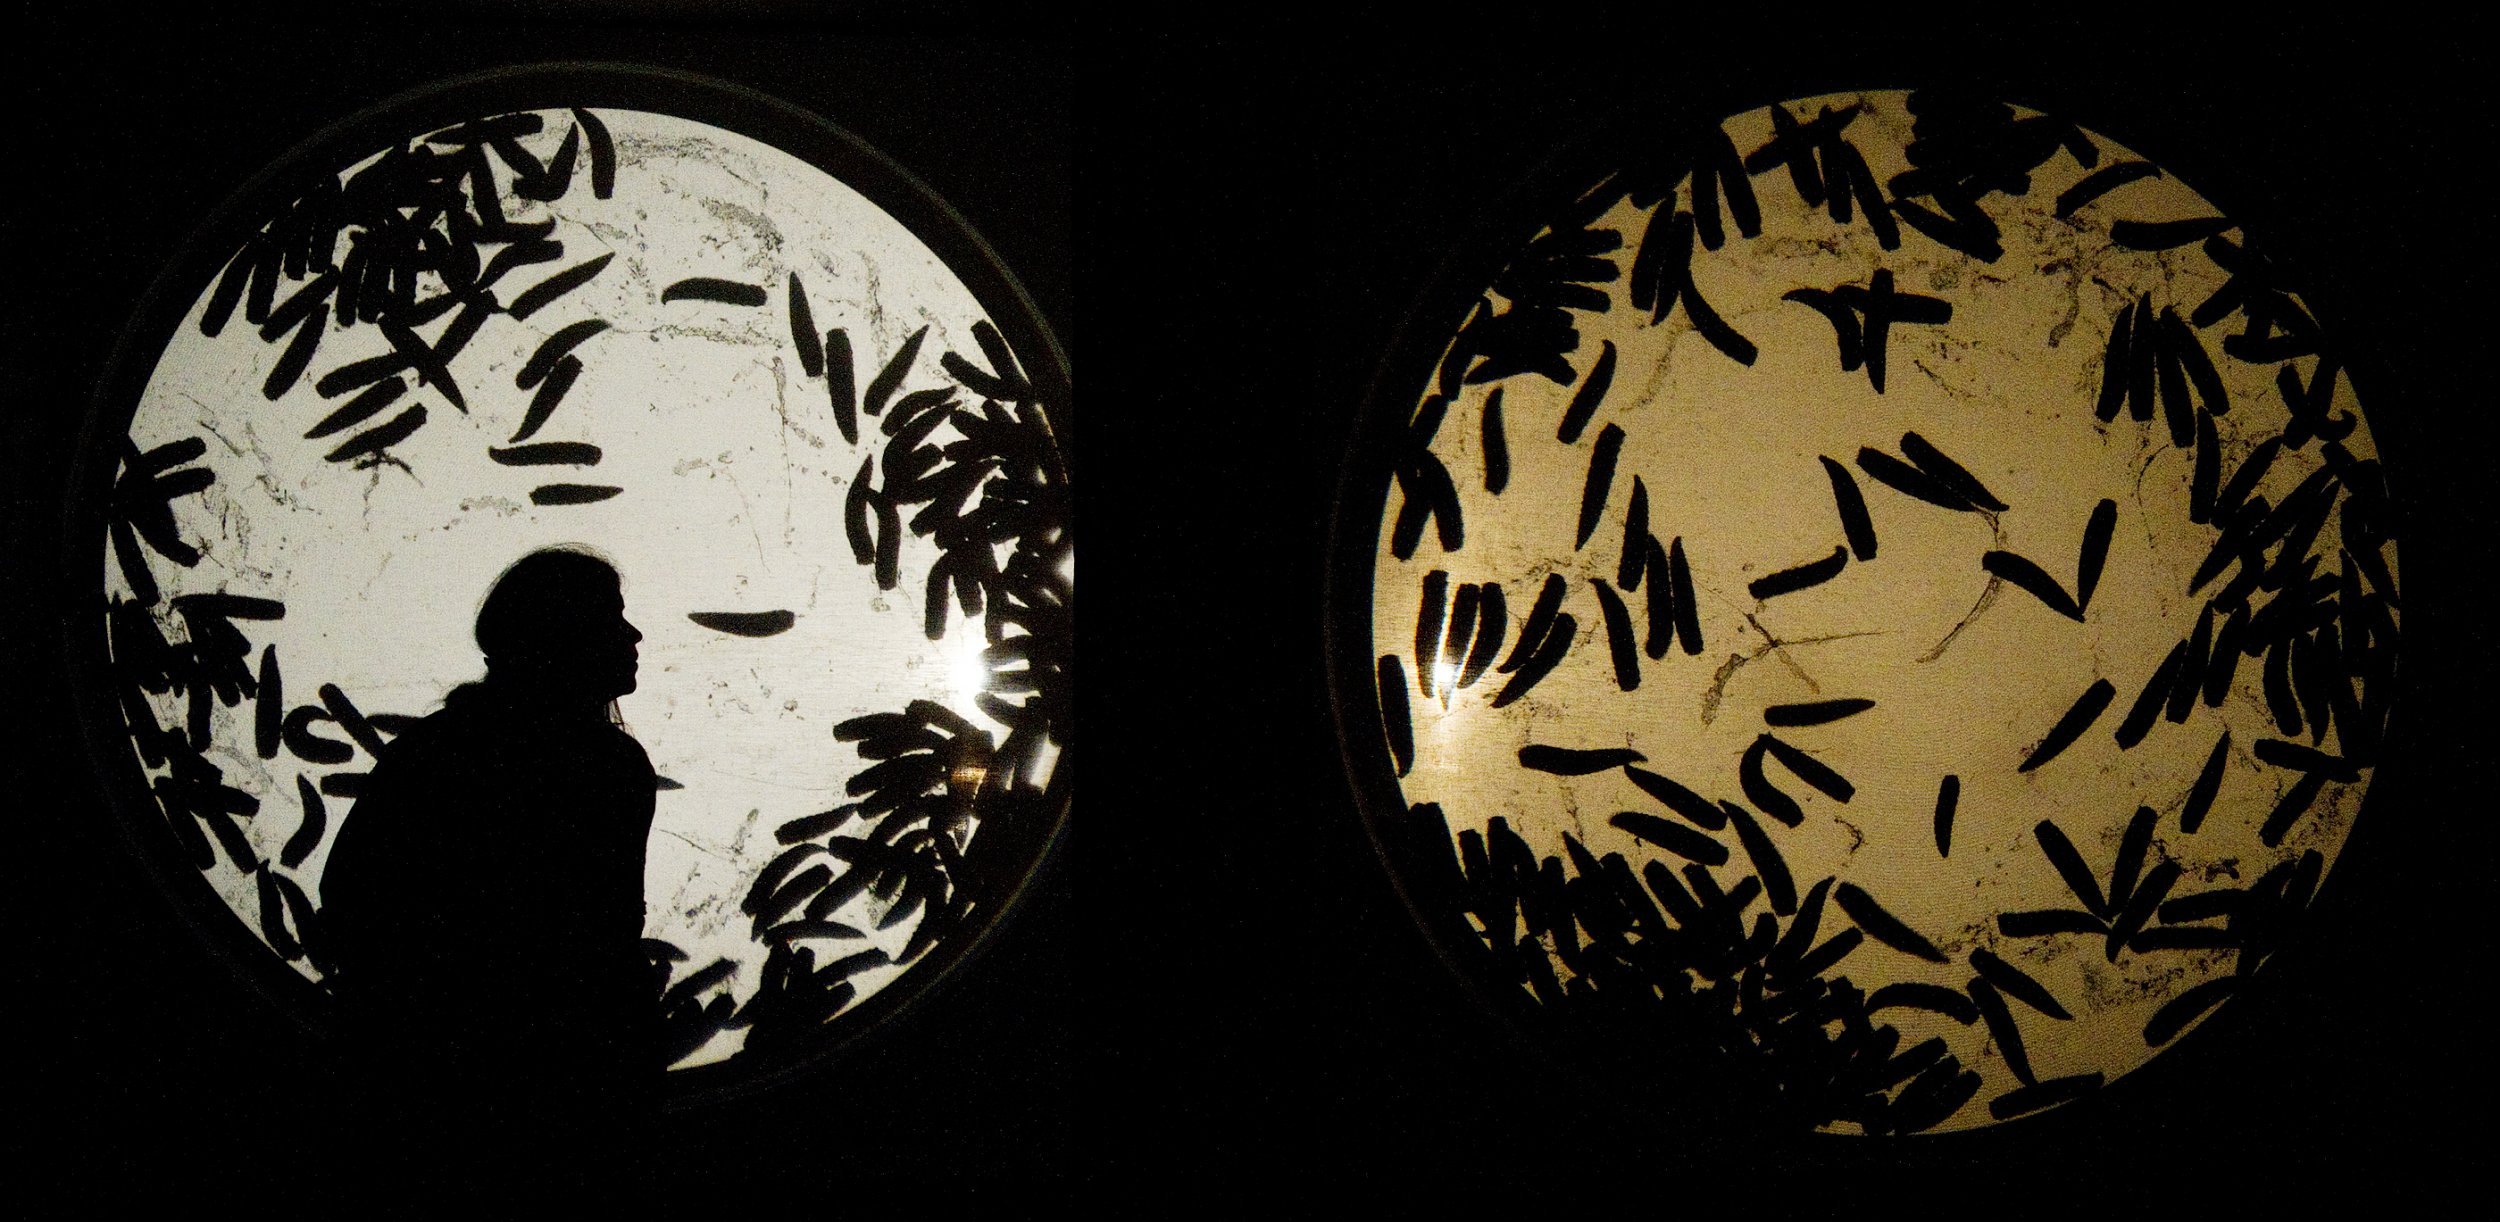 Projection of live maggots